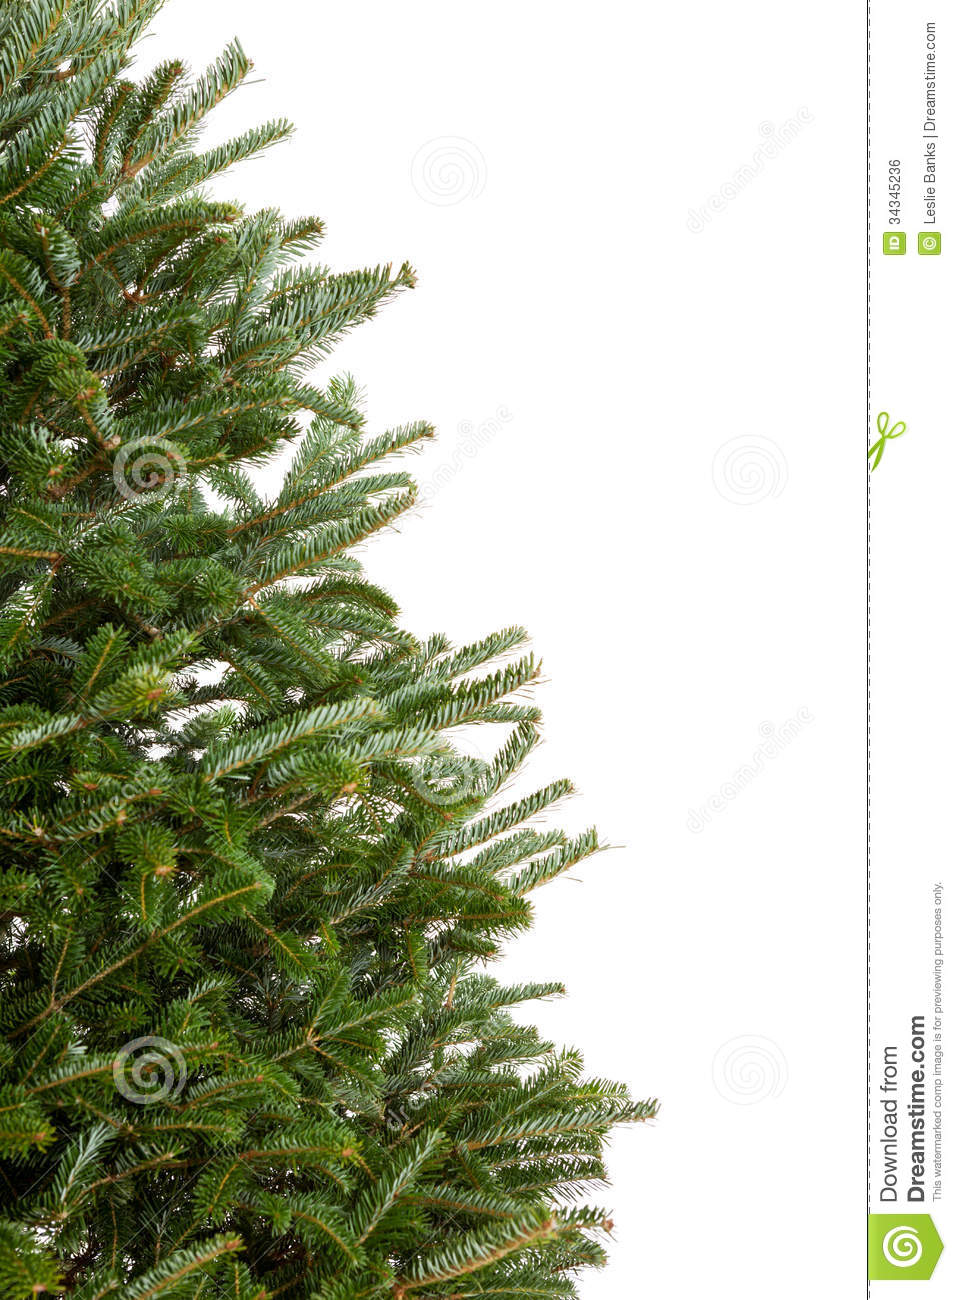 Branches Of A Christmas Tree Royalty Free Stock Image - Image ...